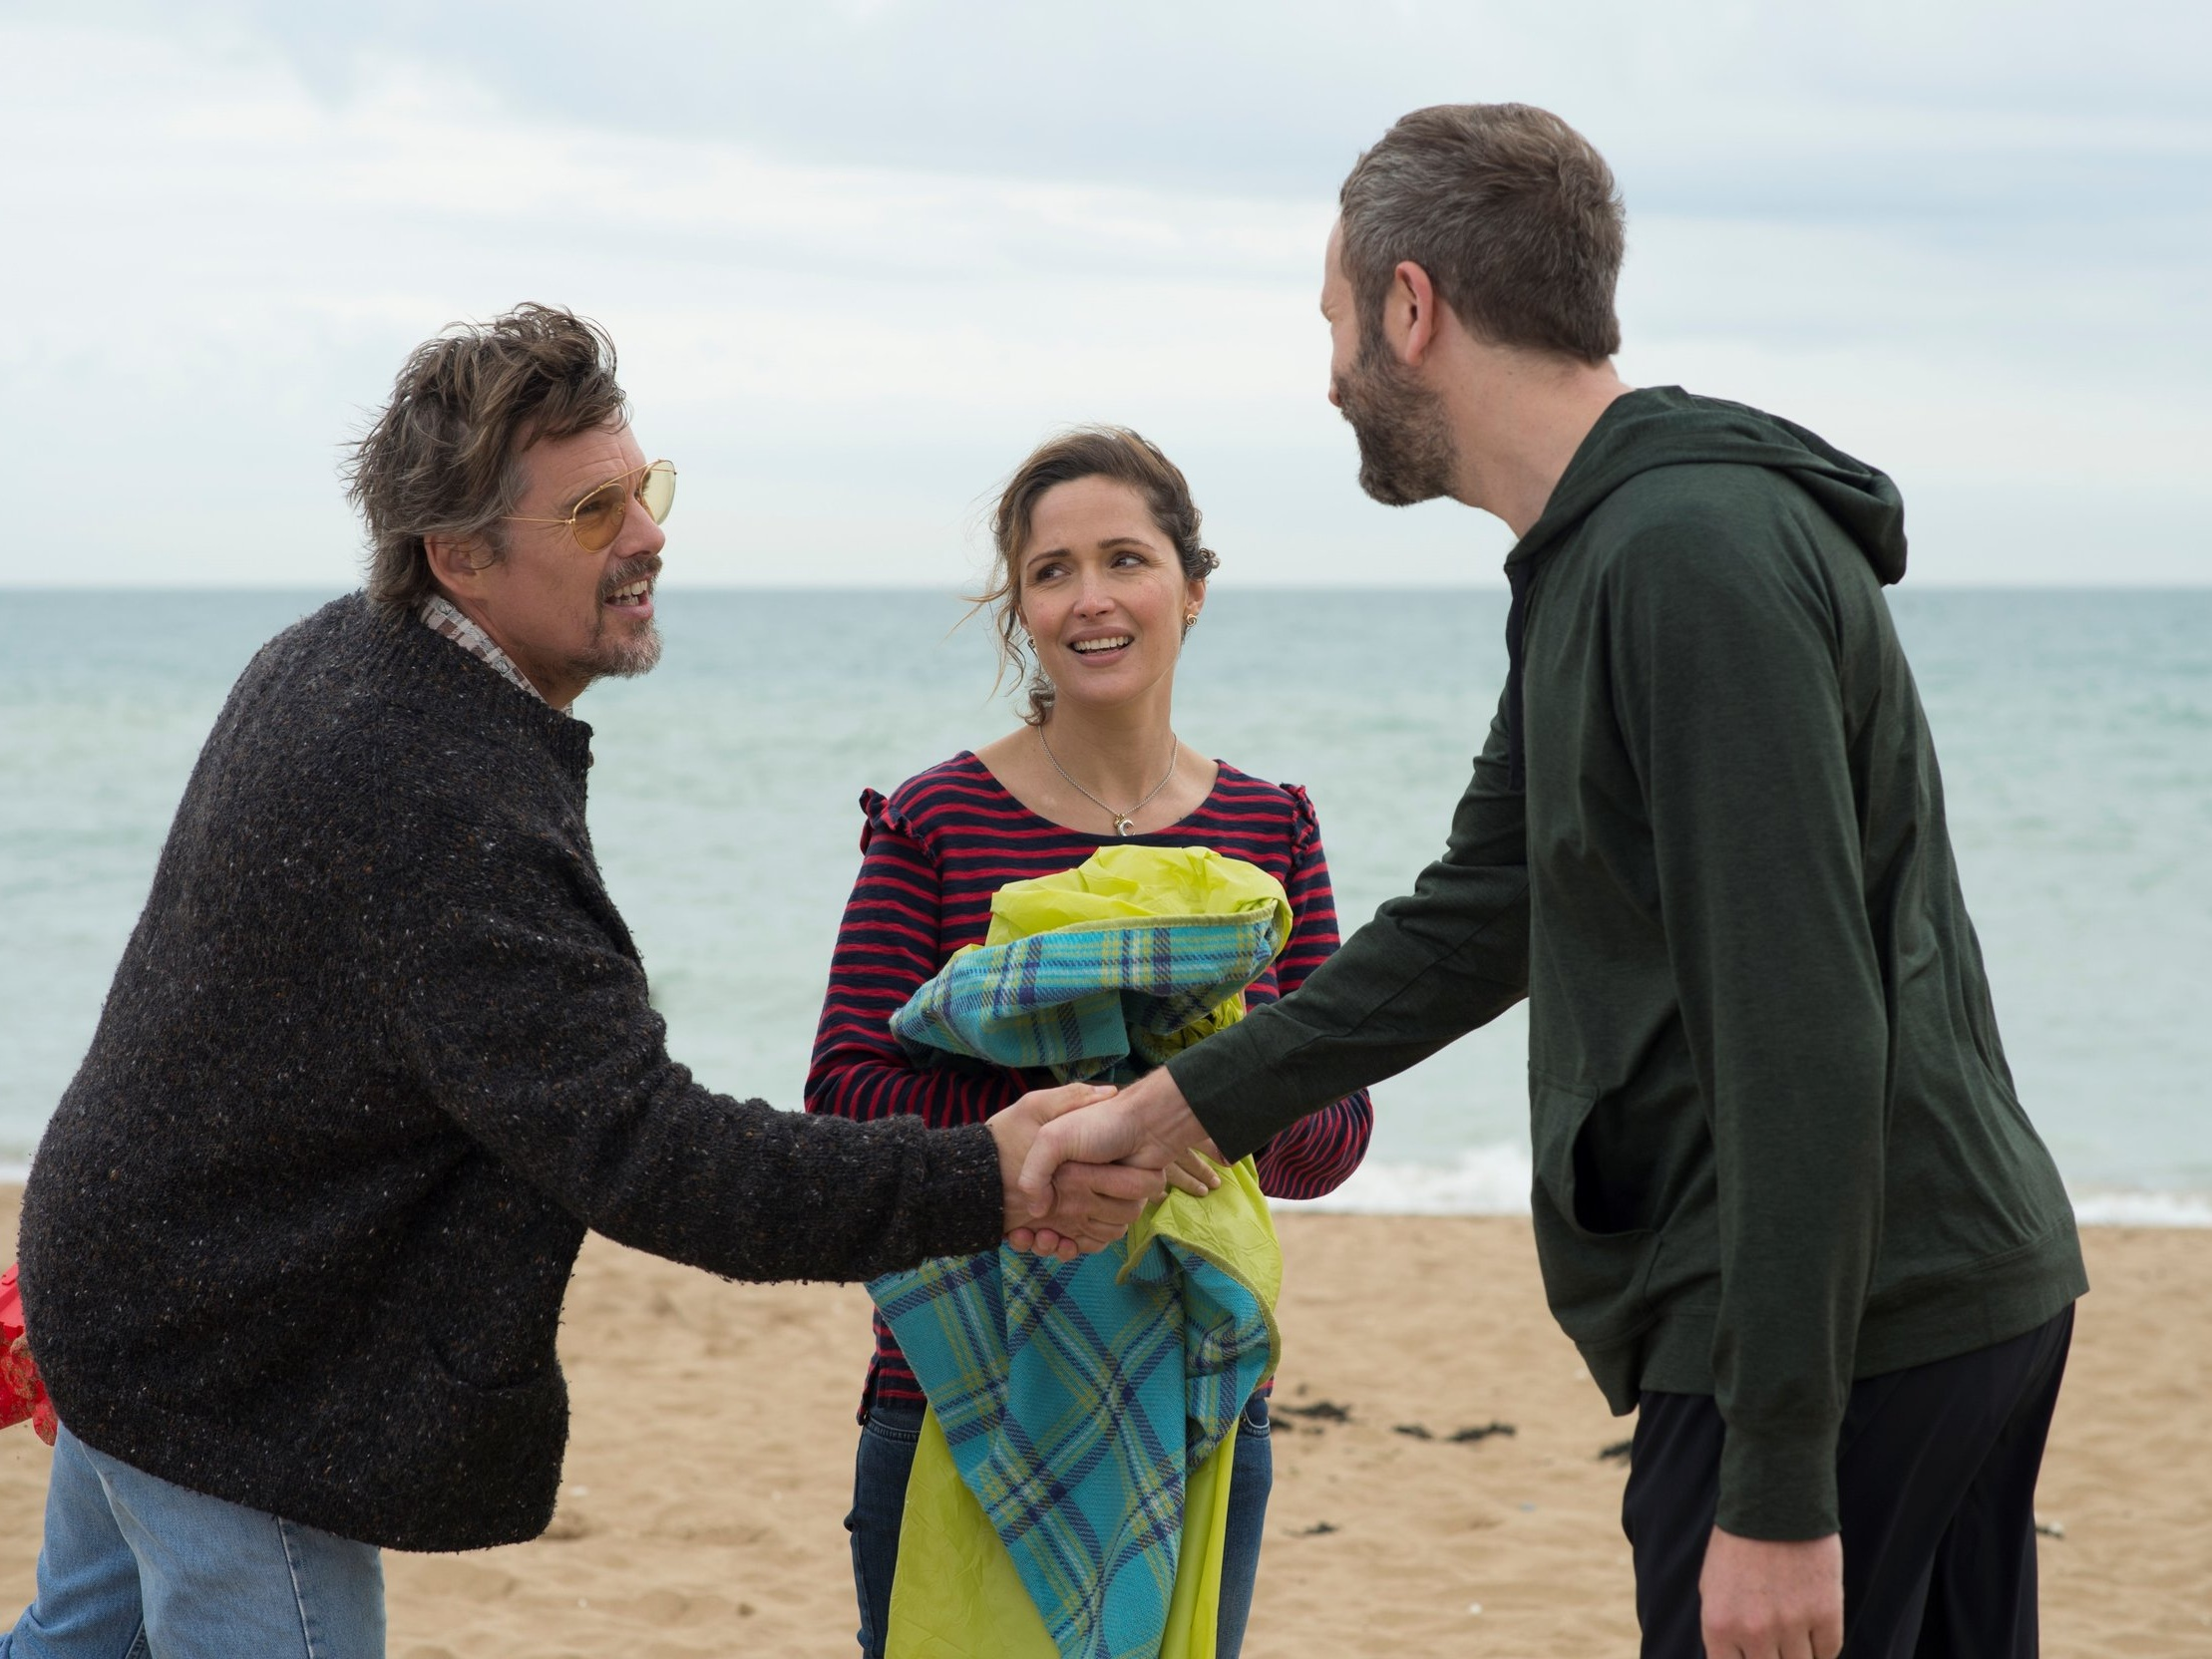 Juliette, Naked - August 10, 2019 - 3pmAnnie (Rose Byrne) is stuck in a long-term relationship with Duncan (Chris O'Dowd) - an obsessive fan of obscure rocker Tucker Crowe (Ethan Hawke). When the acoustic demo of Tucker's hit record from 25 years ago surfaces, its release leads to a life-changing encounter with the elusive rocker himself. Based on the novel by Nick Hornby (About a Boy, High Fidelity), Juliet, Naked is a comic account of life's second chances.PG | 98 min